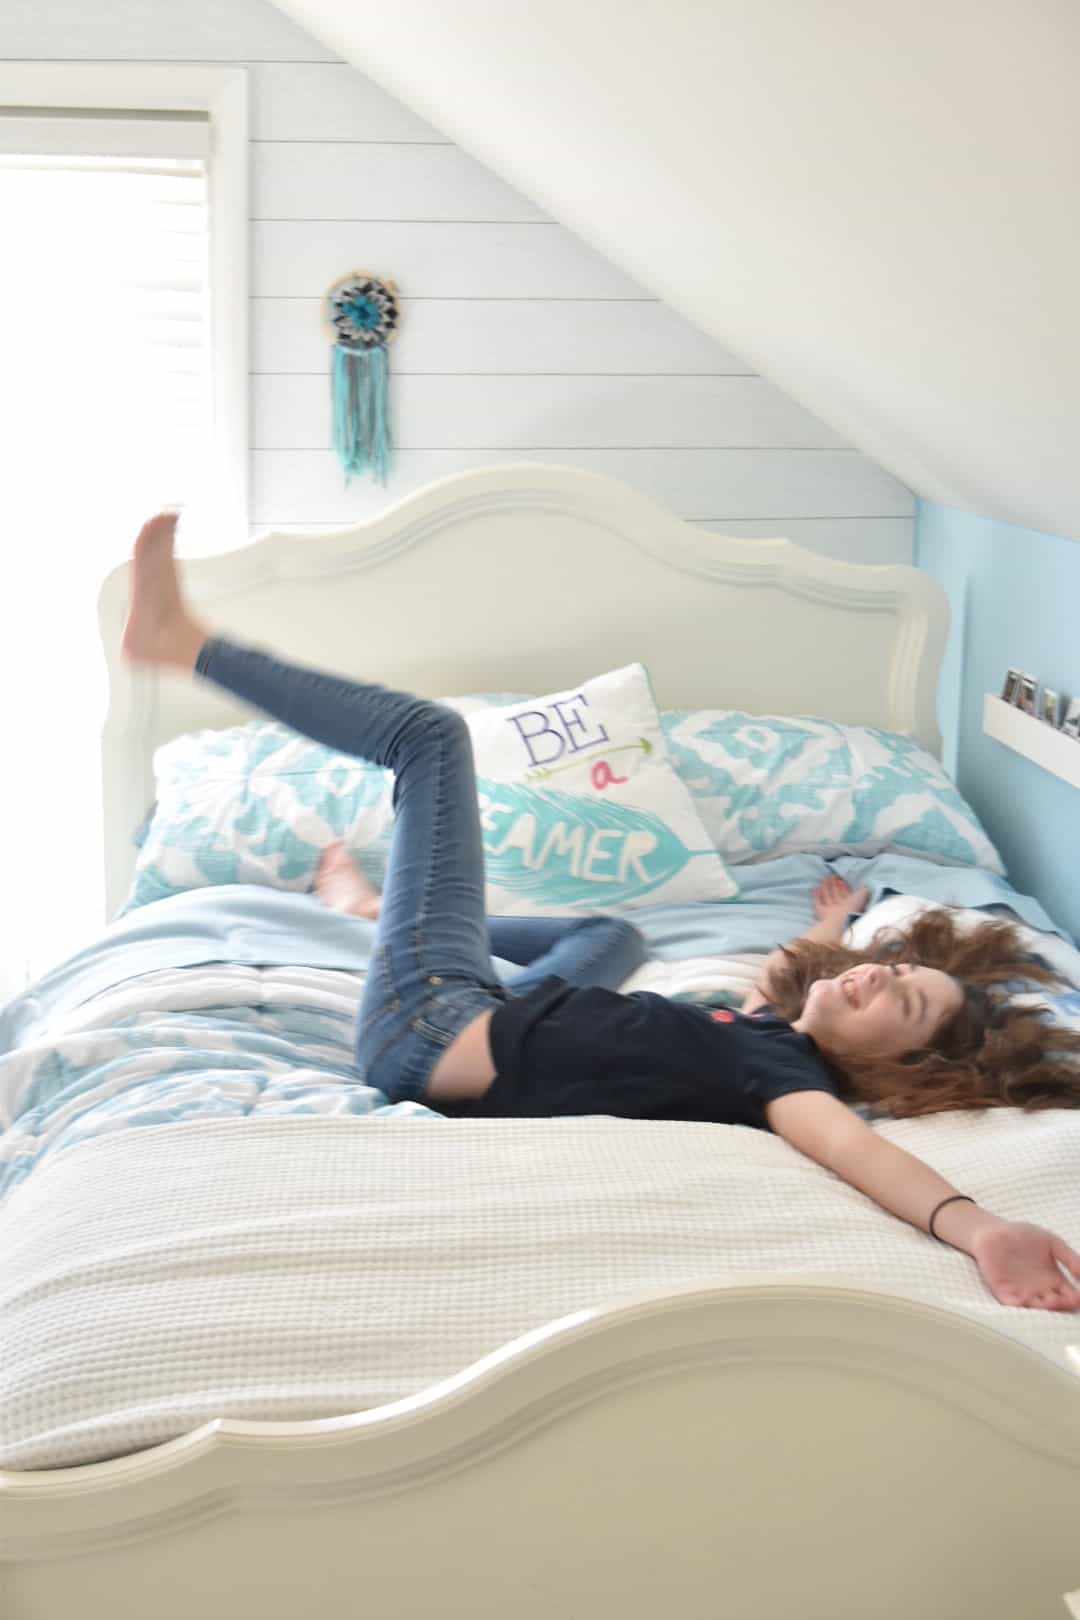 Tween Girl Bedroom Inspiration #beachthemed #potterybarnteen #teengirlbedroom